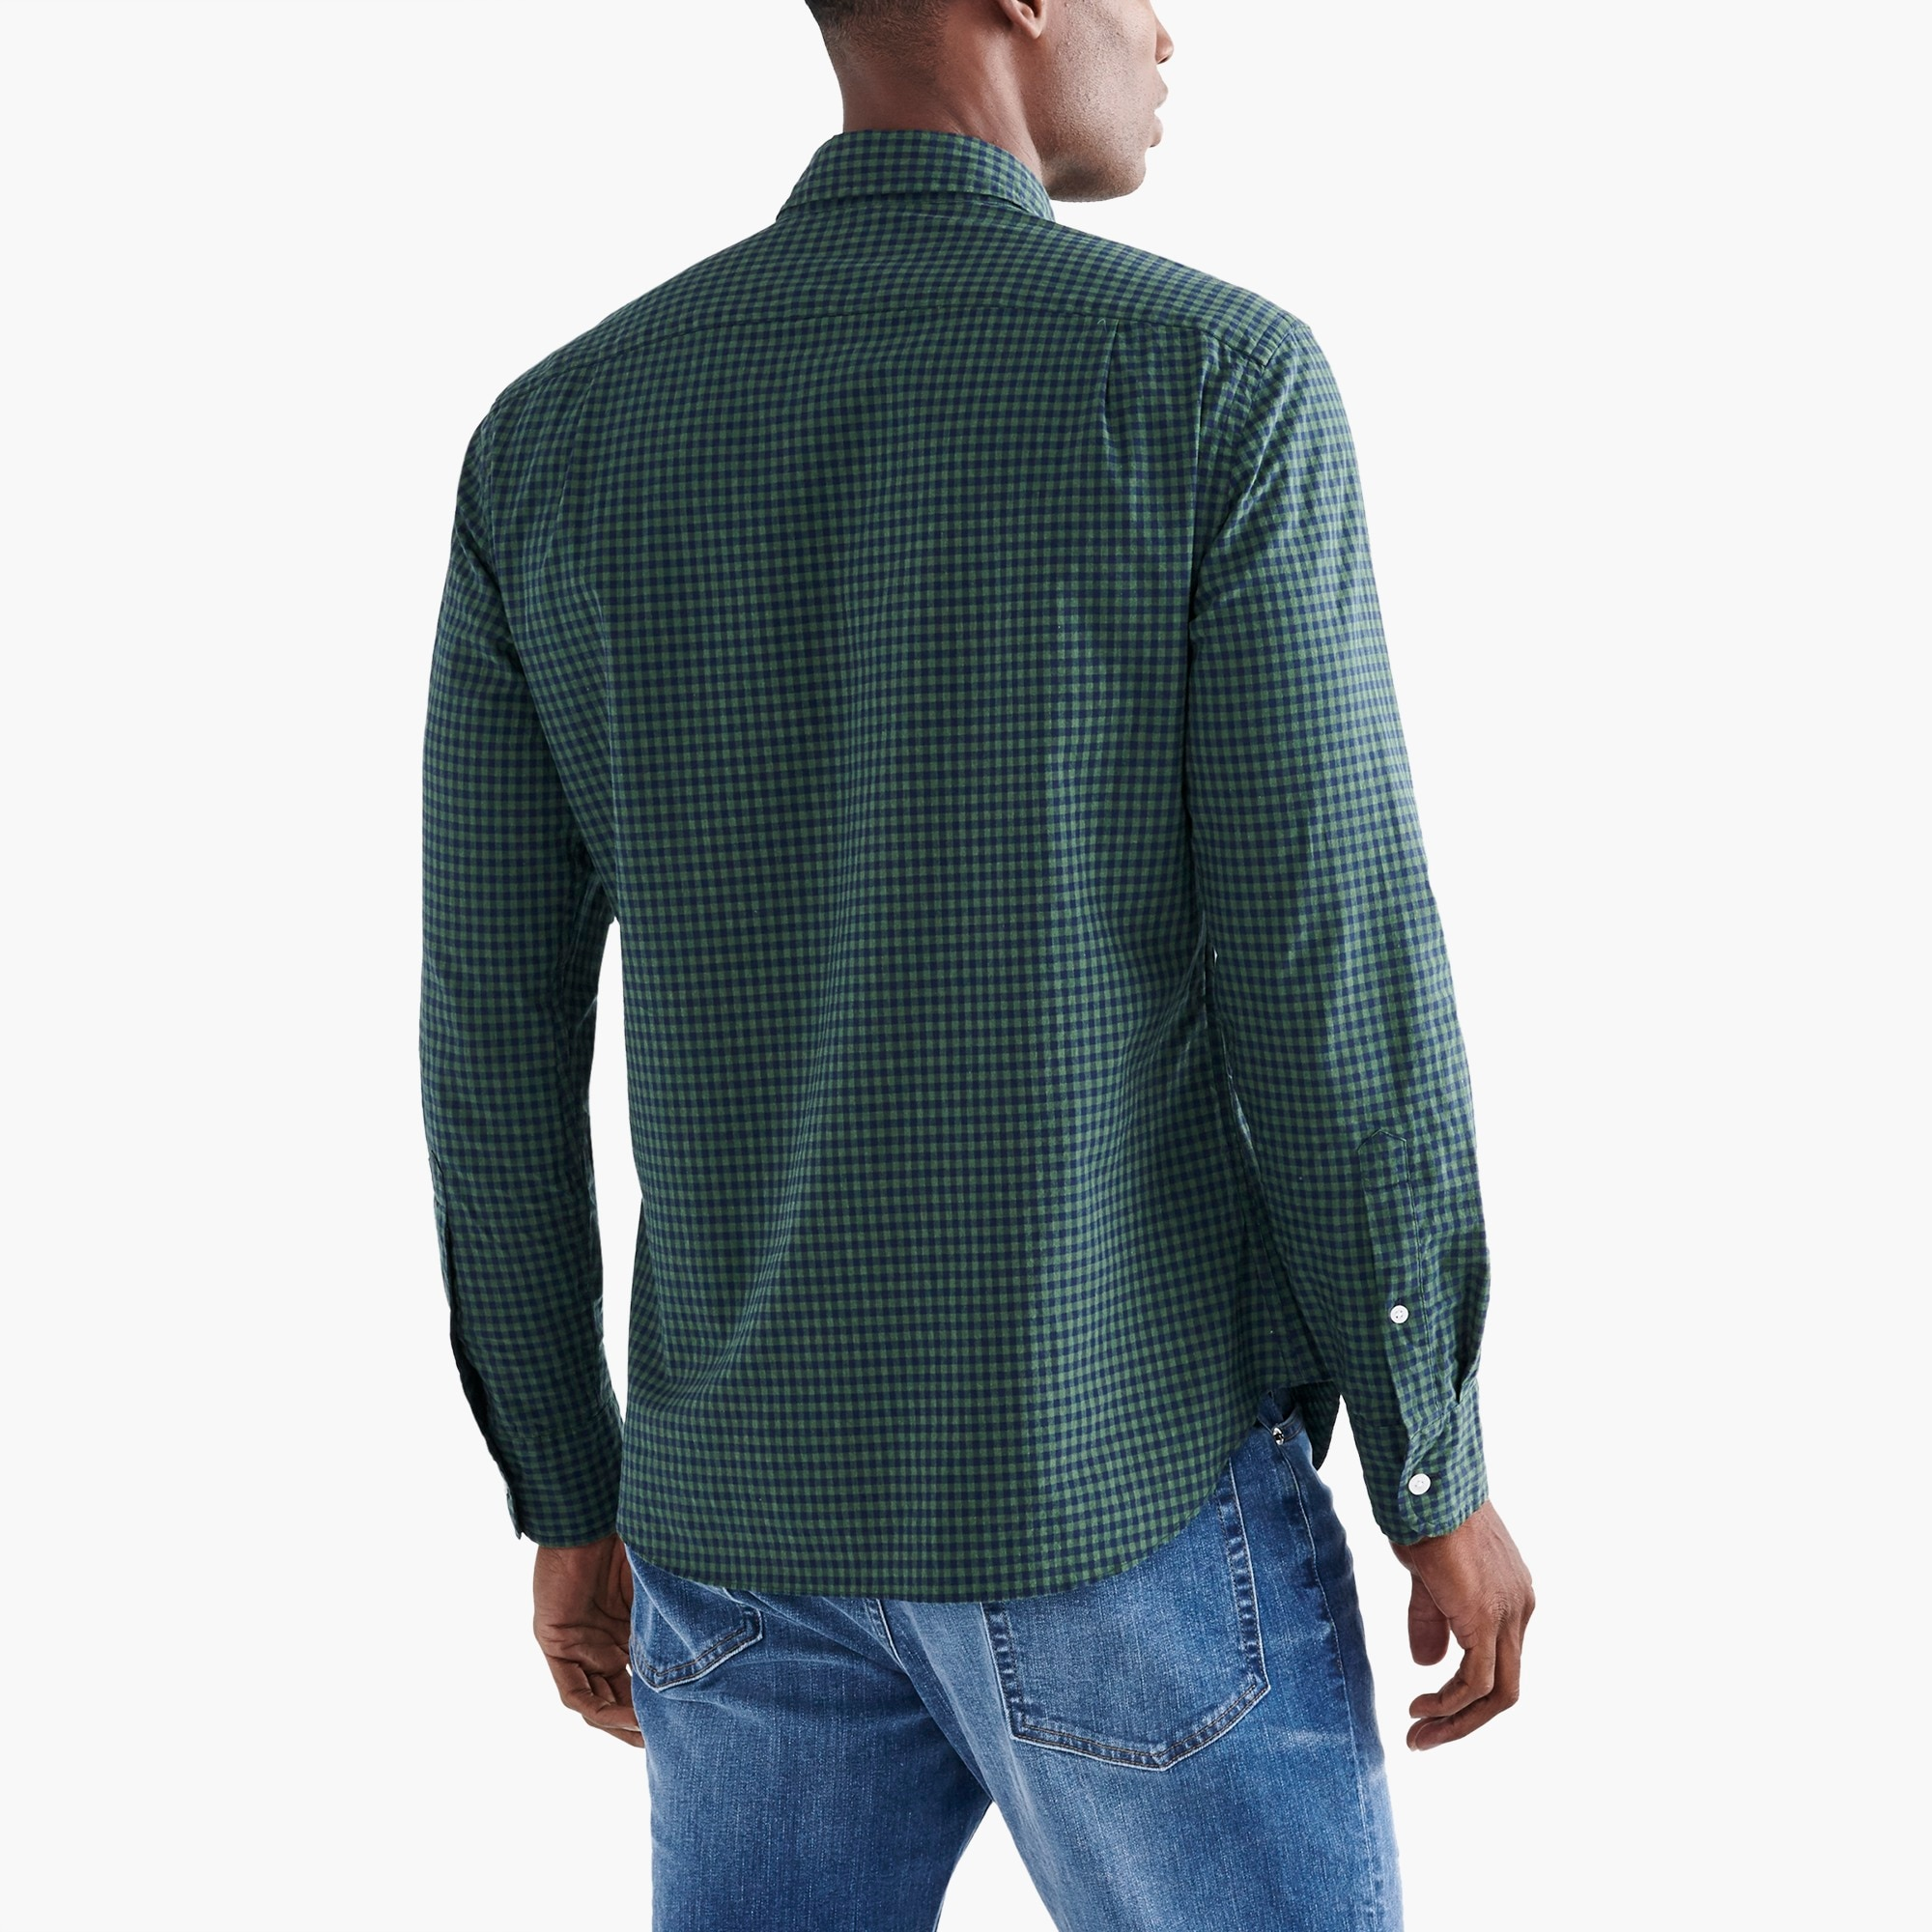 Image 2 for Slim flex heather washed shirt in gingham